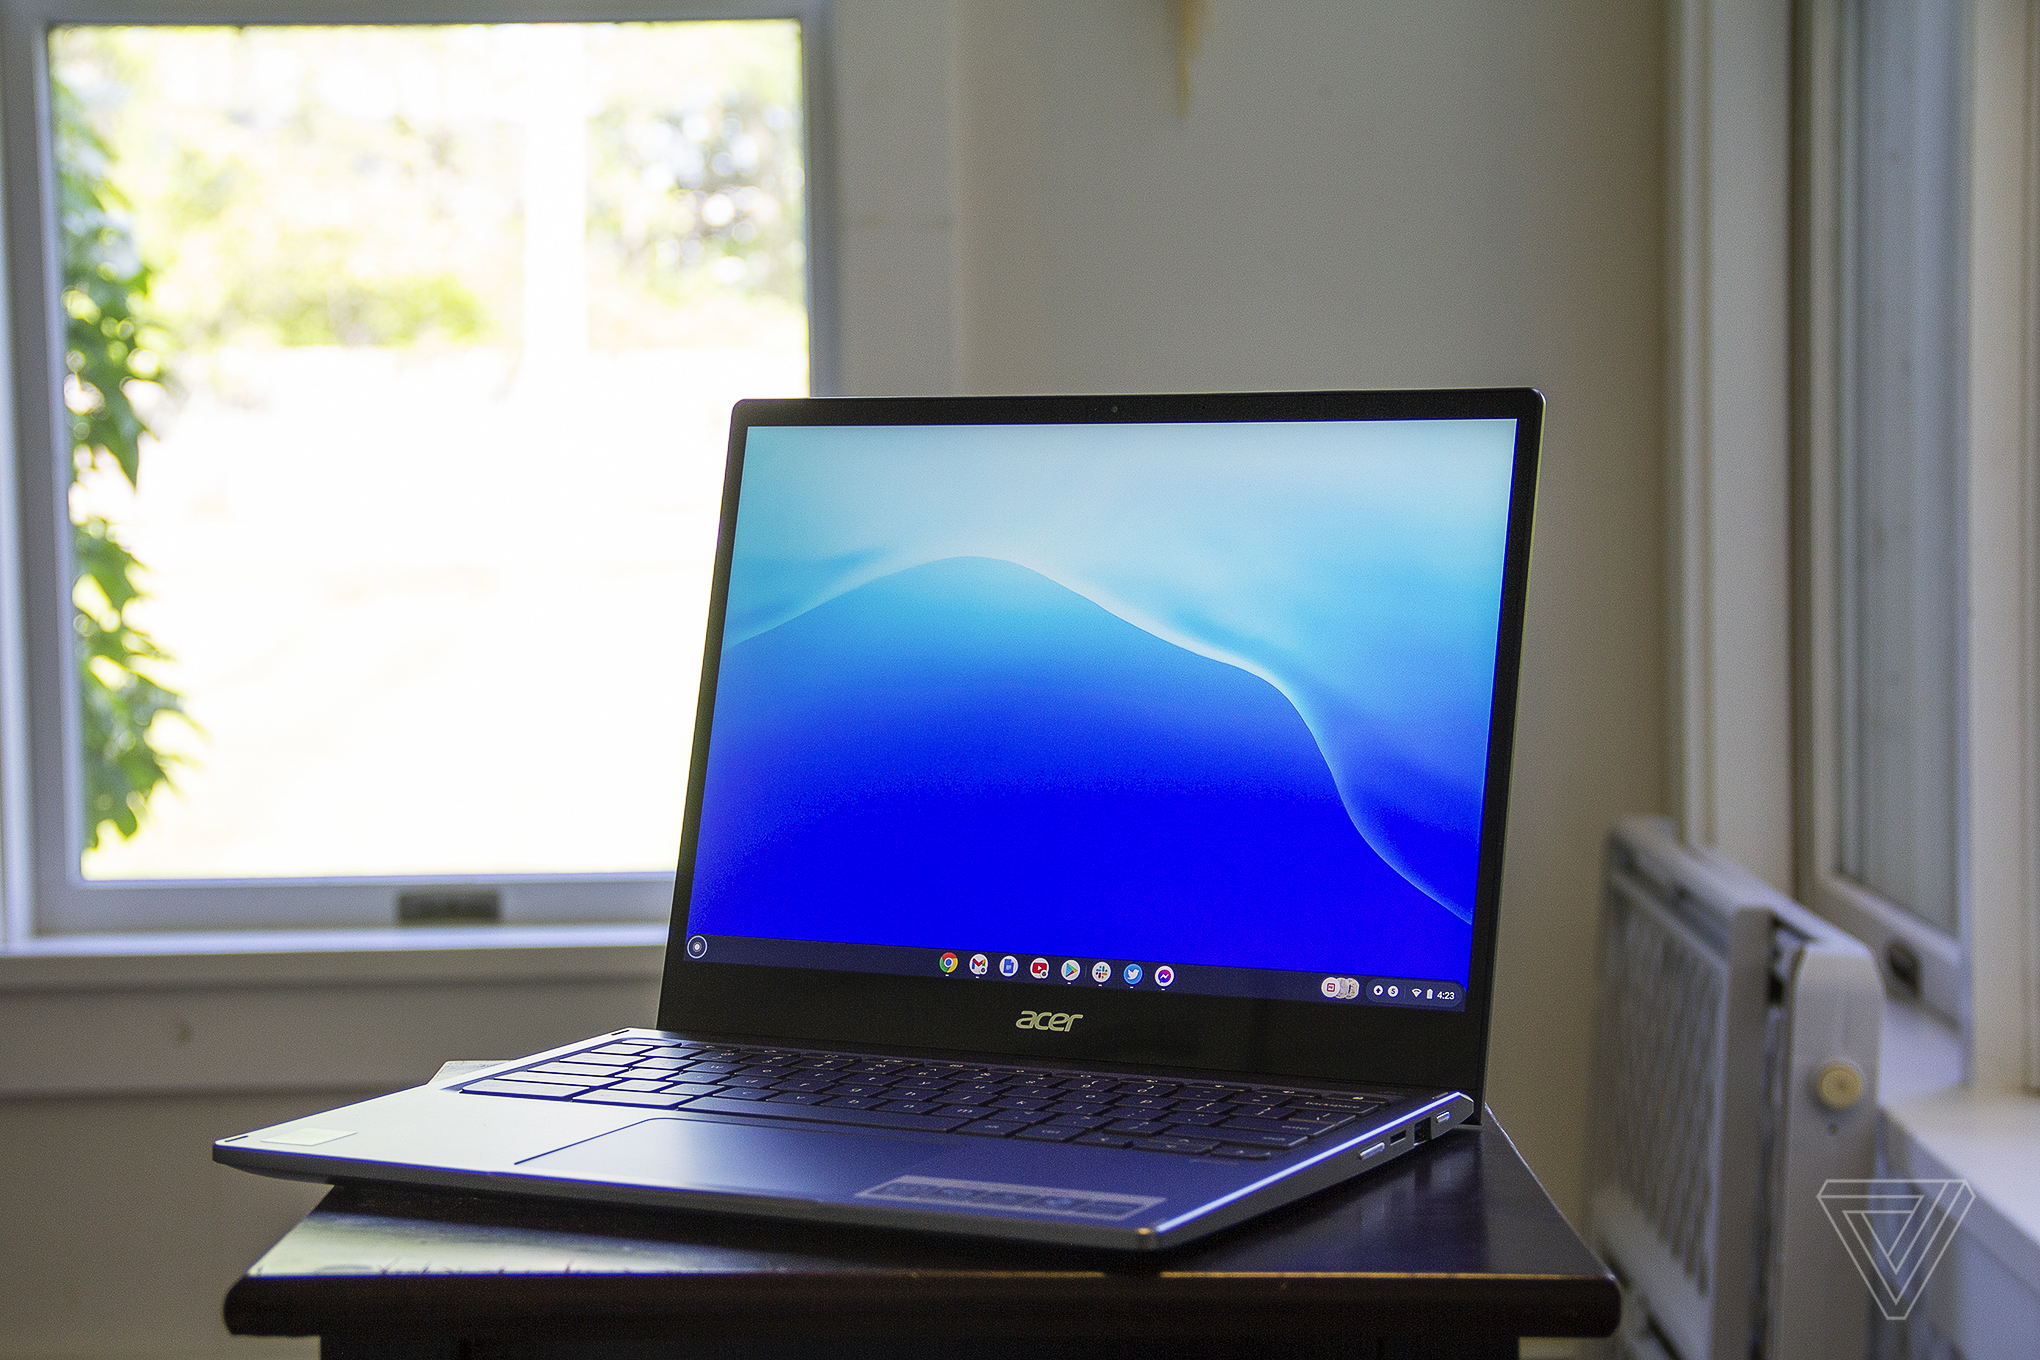 The Acer Chromebook Spin 713 on a small table in front of a bright window. The screen displays a blue pattern.